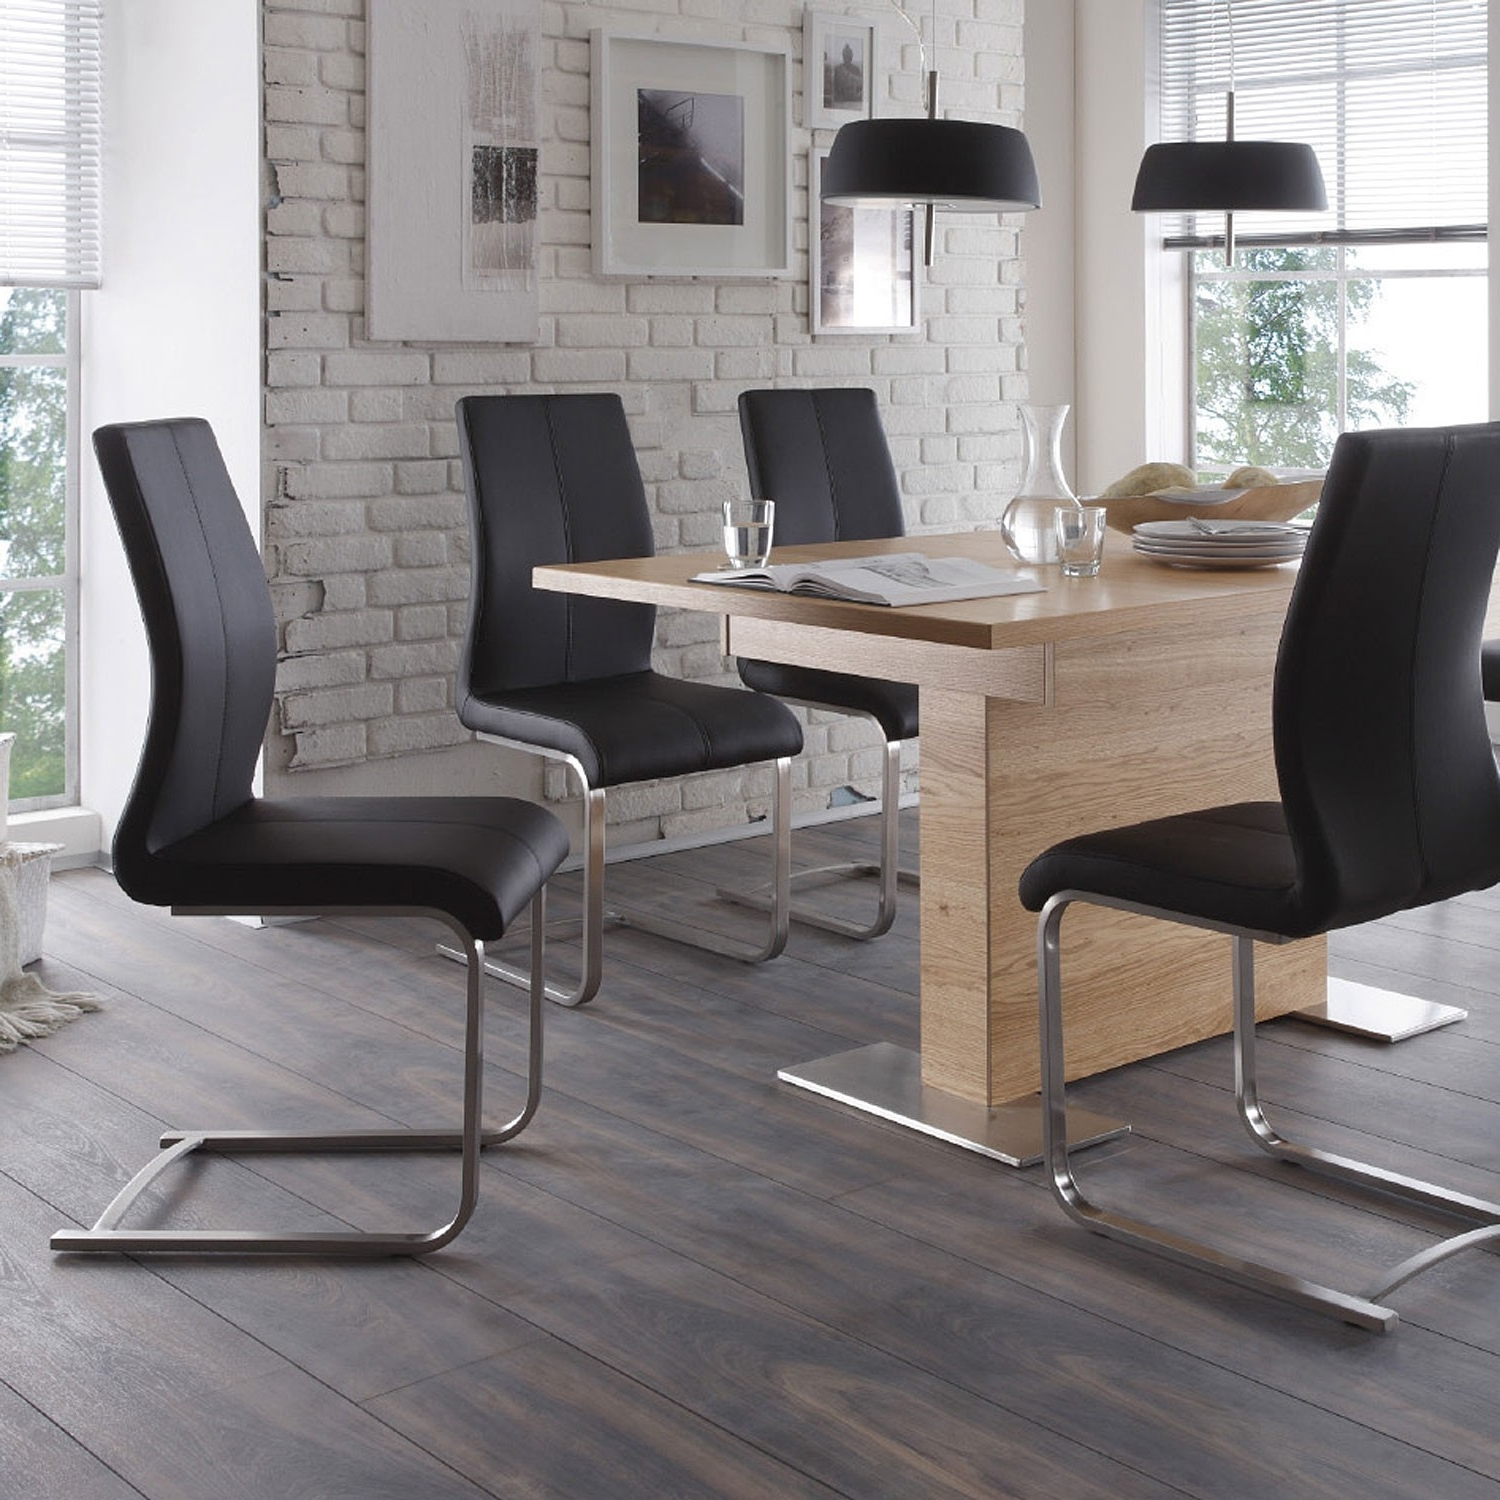 Tr Hayes – Furniture Store, Bath Throughout Well Known Real Leather Dining Chairs (View 24 of 25)